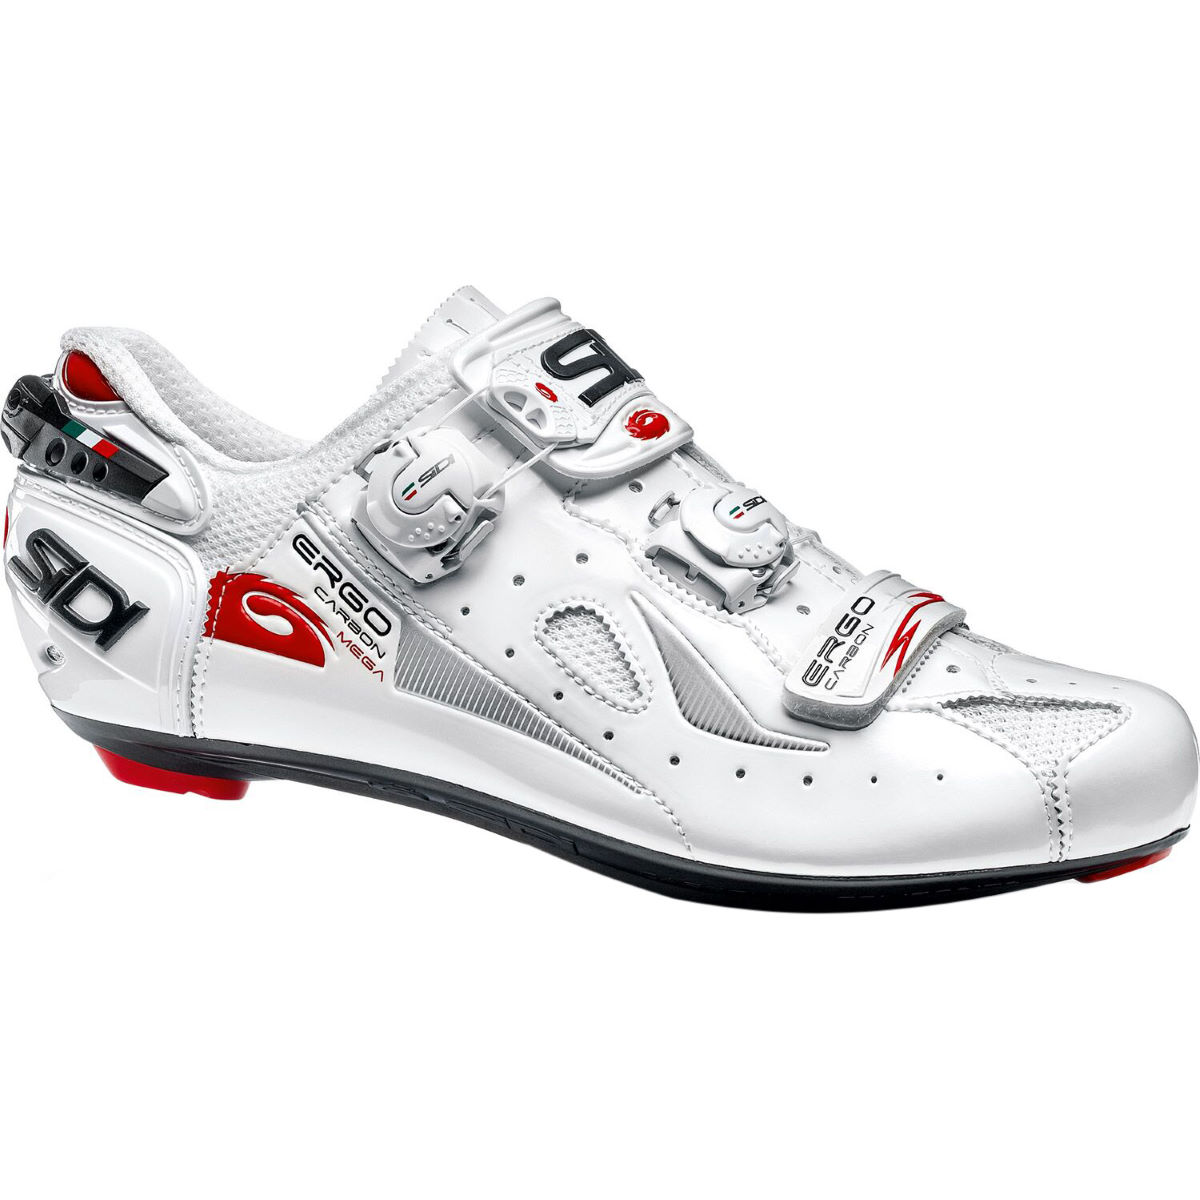 Zapatillas de carretera Sidi Ergo 4 Carbon (Mega/Wide Fit) - Zapatillas para bicicletas de carretera